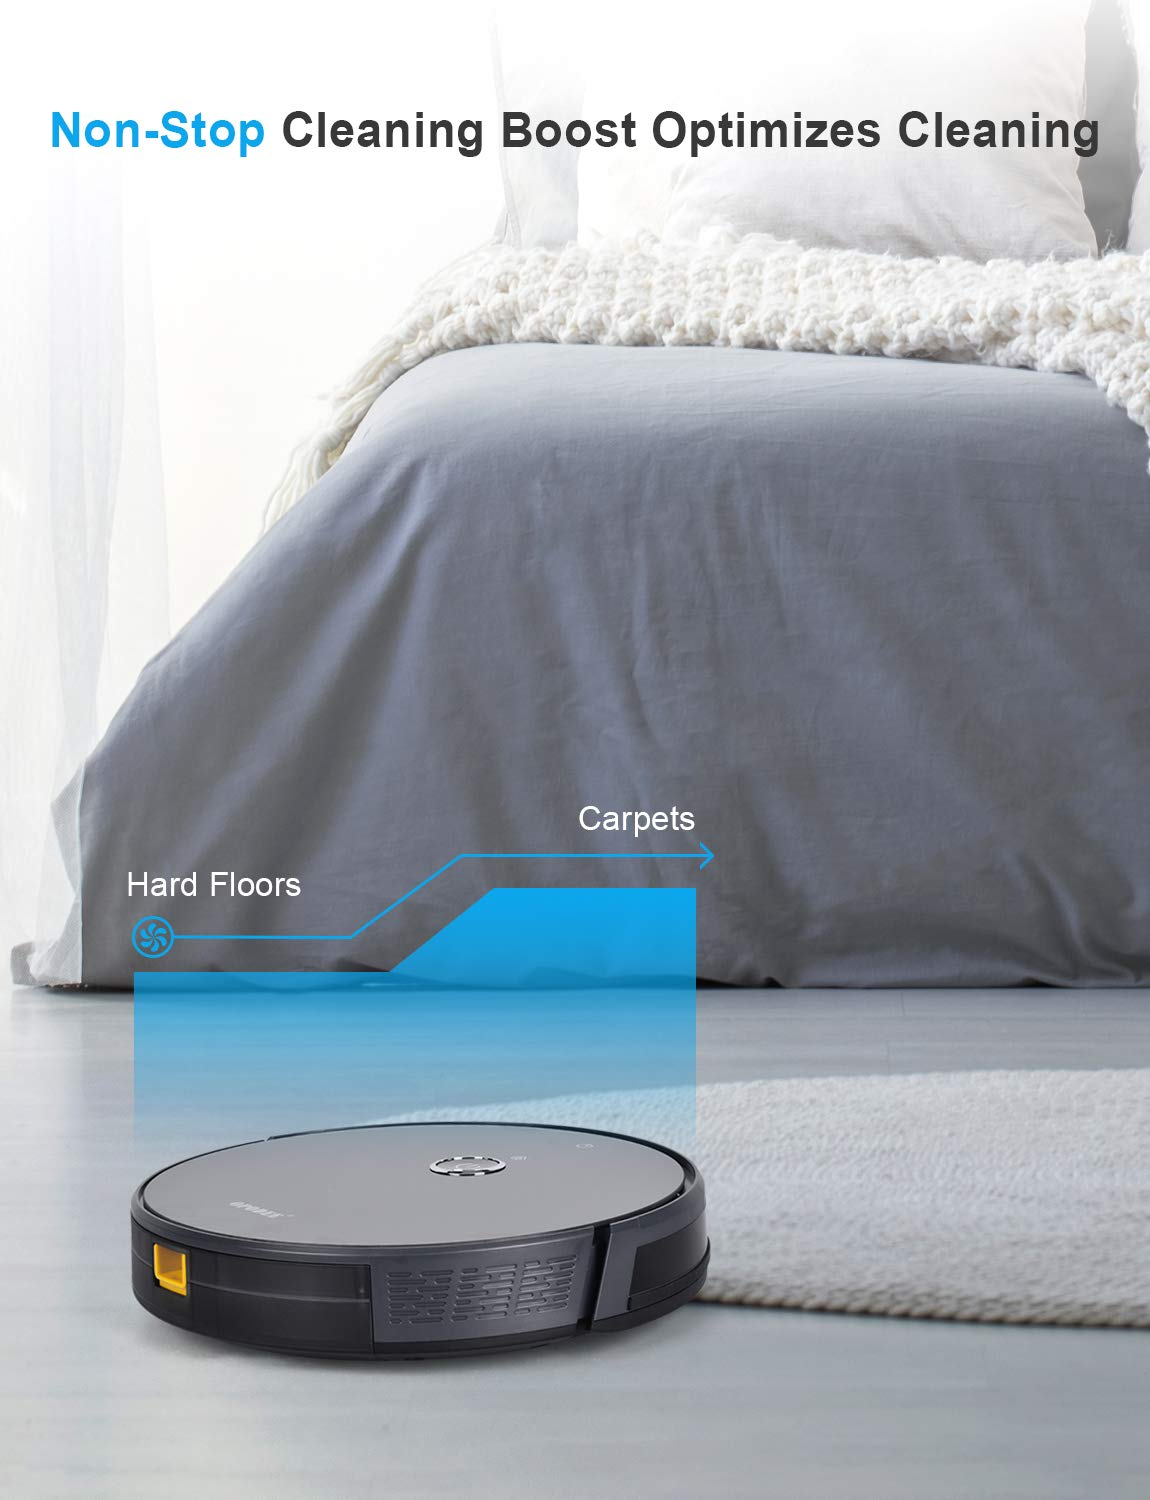 Self-Charging Smart Navigation Mid-Pile Soft Carpets Robot Pet Hair Cleaning 360/° Sensor Protection Robotic Vacuum Cleaner with 1800Pa Ultra Strong Suction Ideal for Hard Floor Super Quiet